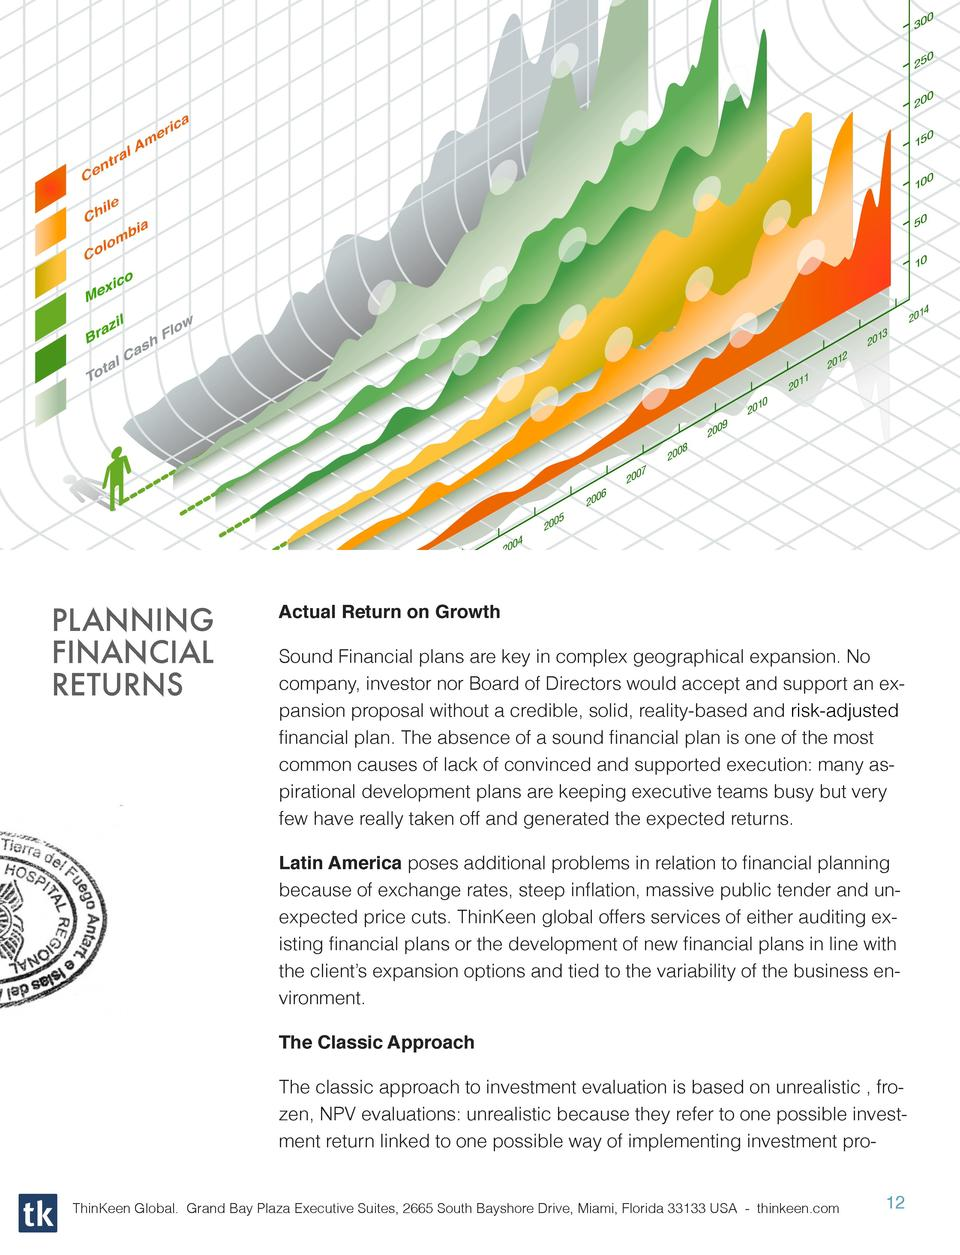 PLANNING FINANCIAL RETURNS  Actual Return on Growth Sound Financial plans are key in complex geographical expansion. No co...